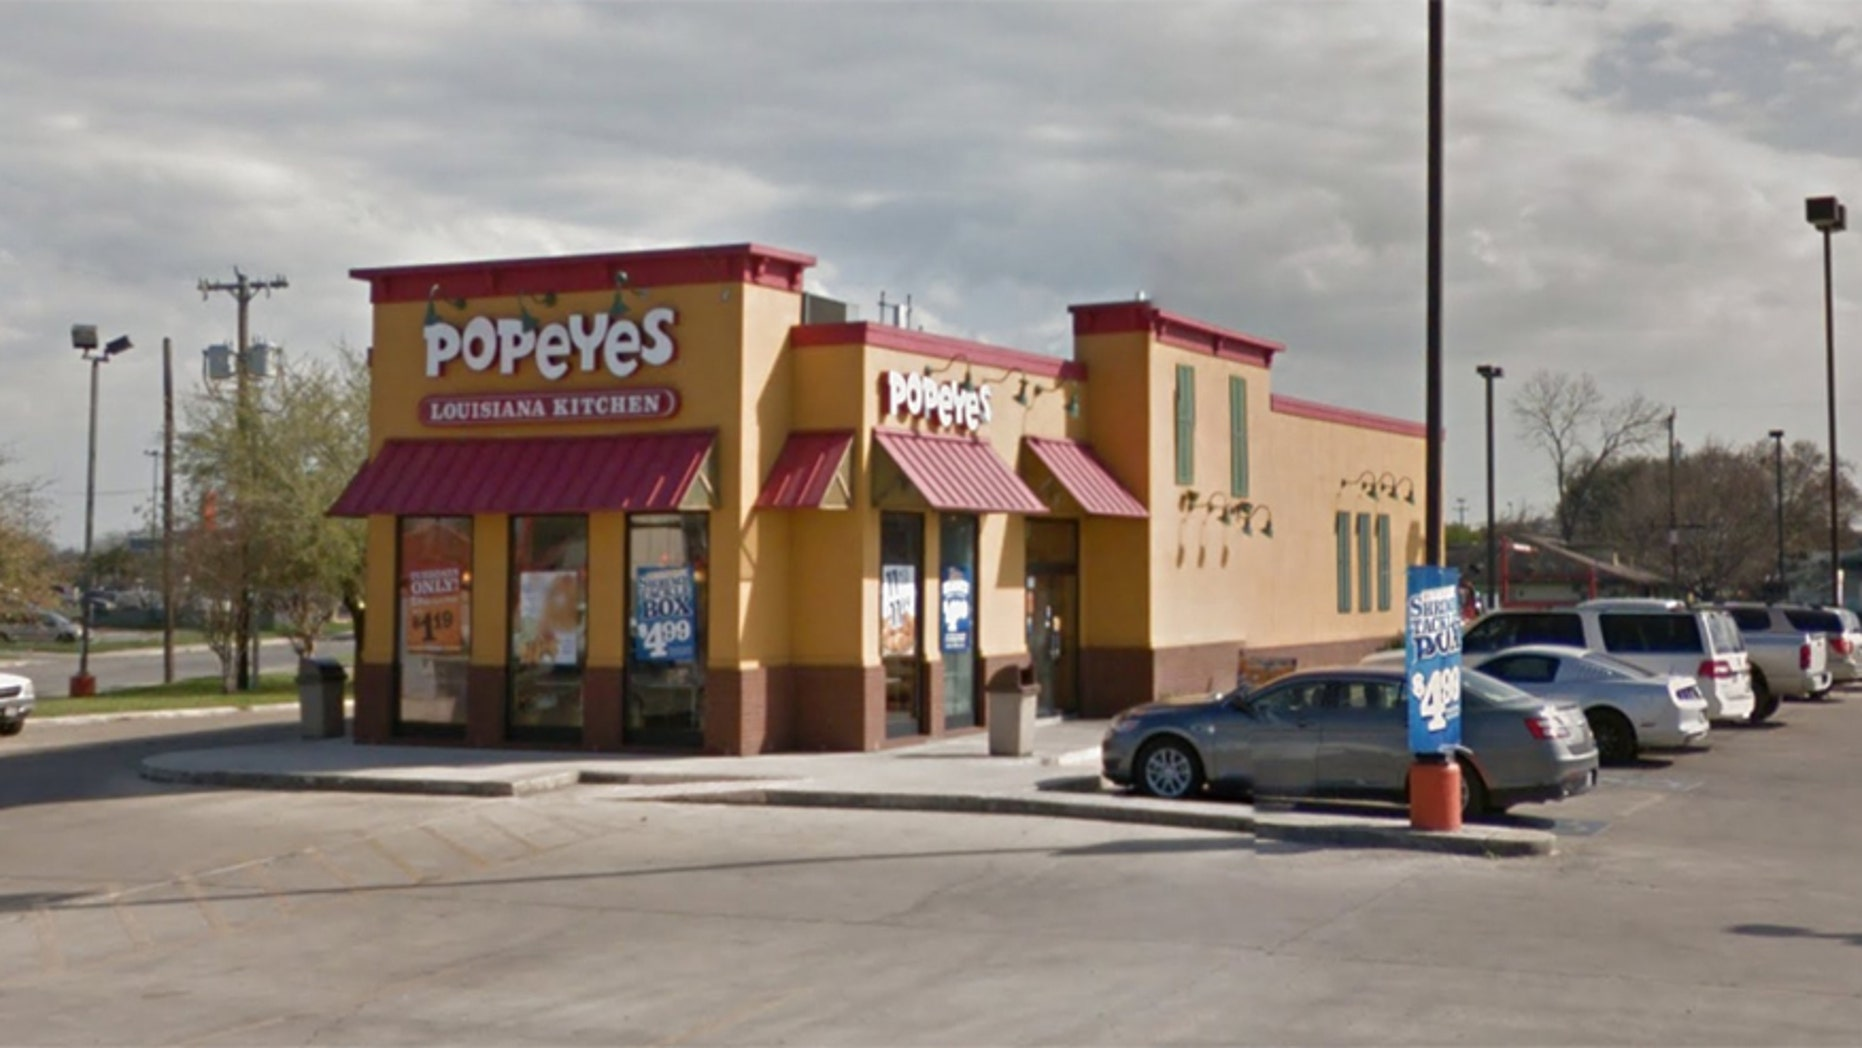 Police say a Texas father shot and killed a robbery suspect after he was threatened at this Popeye's restaurant in San Antonio, Texas.